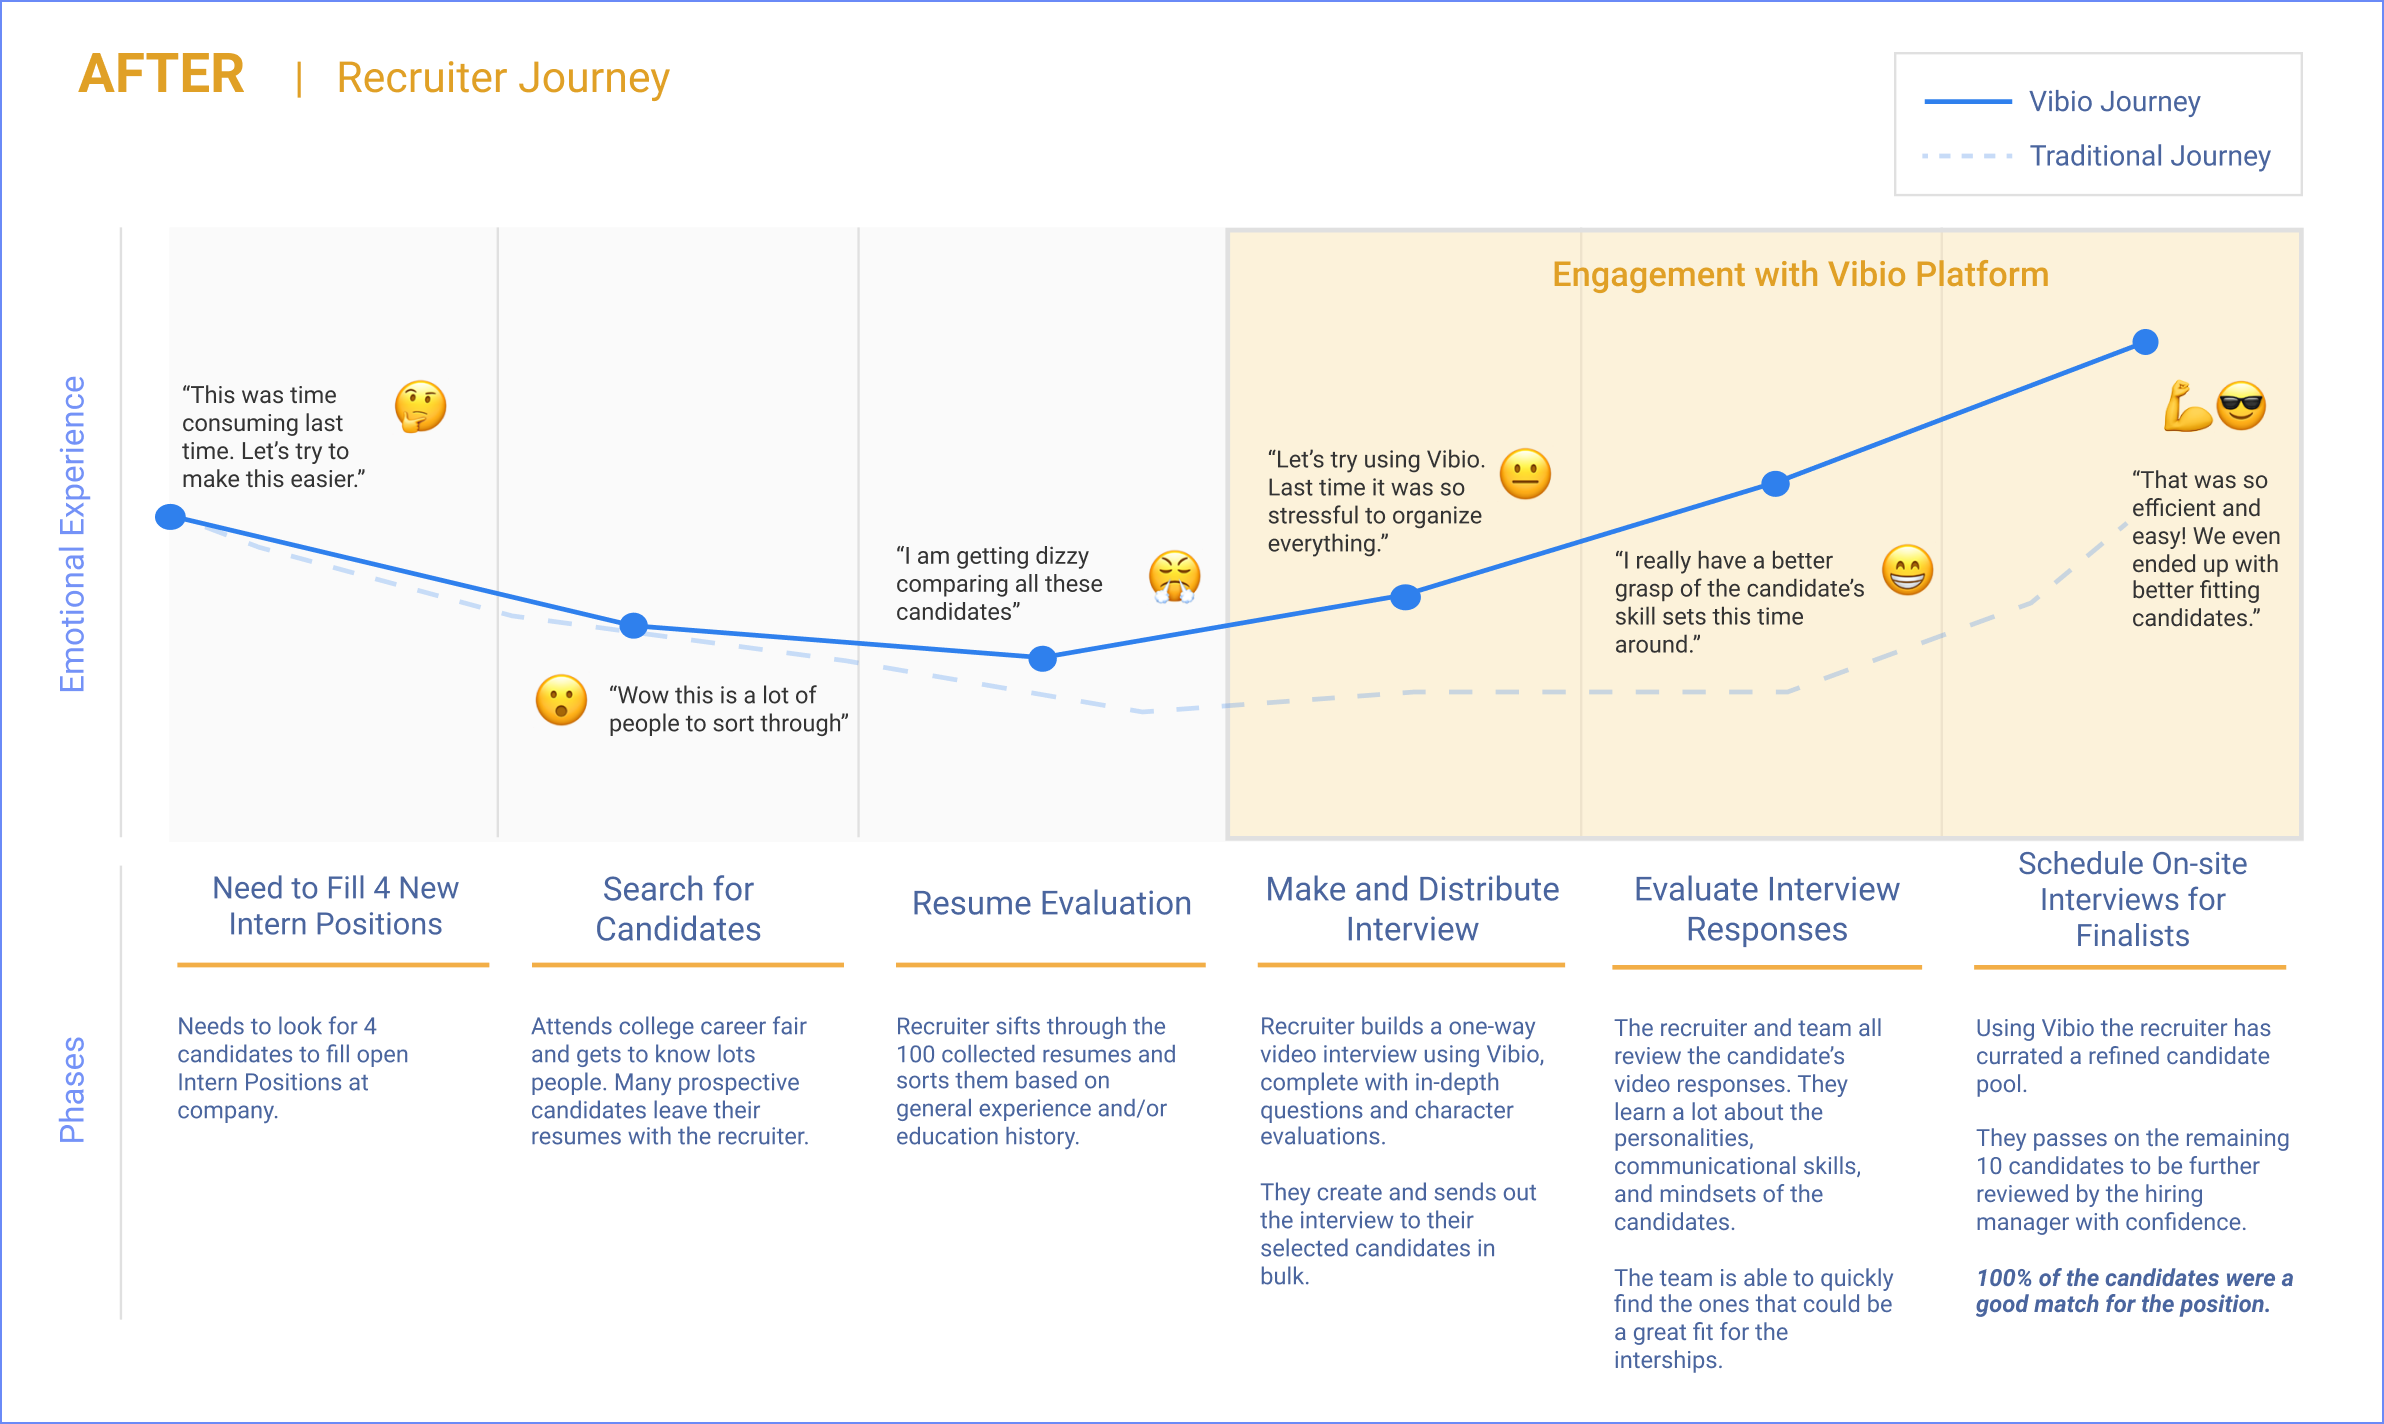 Image of recruiter journey map using Vibio platform